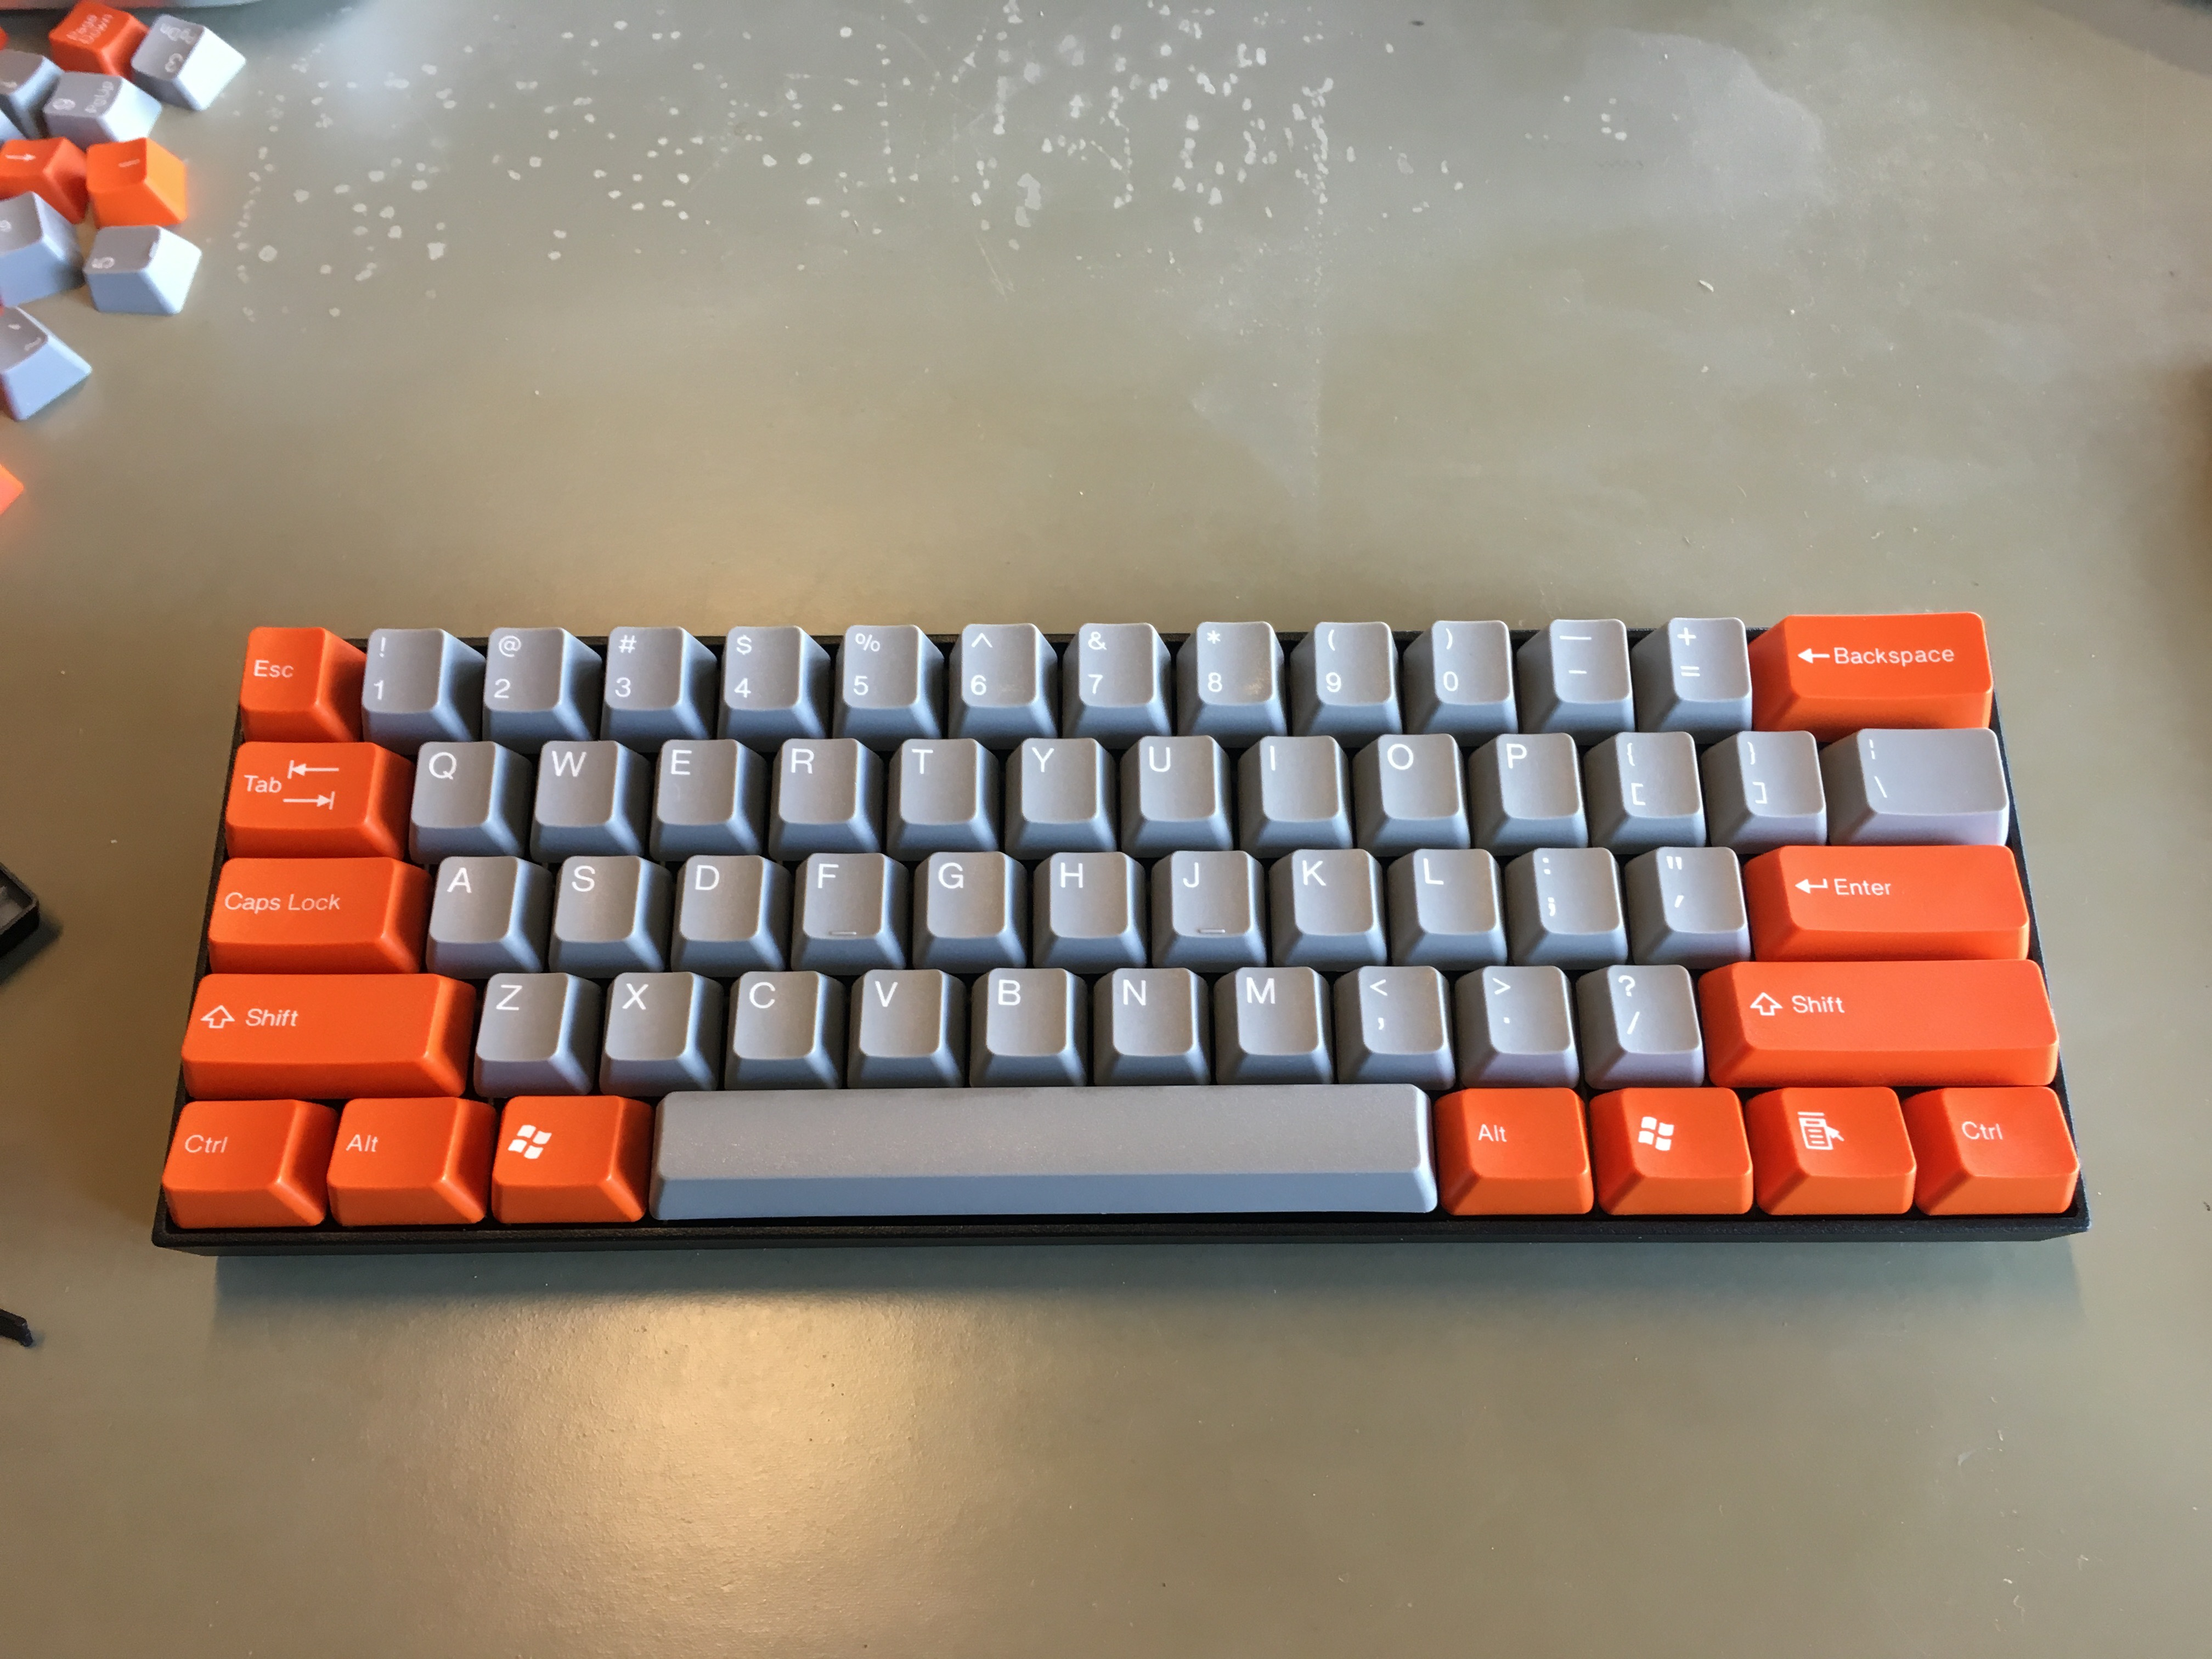 KBParadise V60 with custom orange-grey keycaps